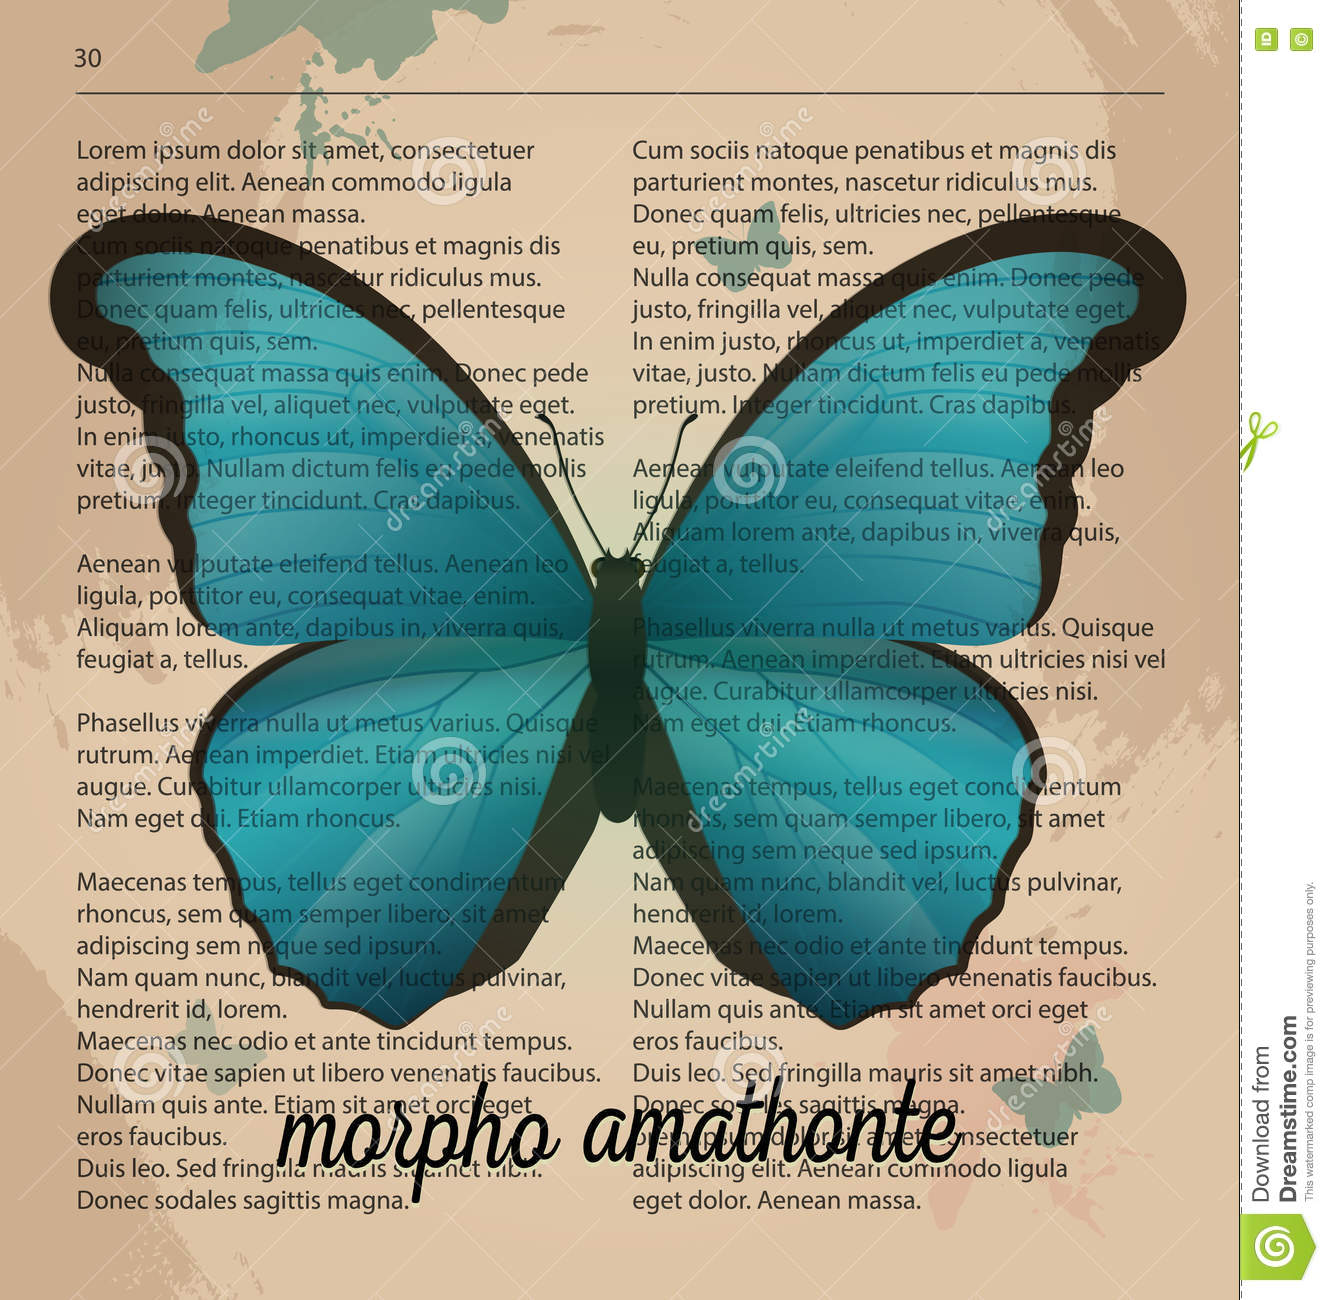 photograph about Printable Vintage Dictionary Pages referred to as Vector Print Blue Butterfly Morpho Amathonte. Printable Artwork